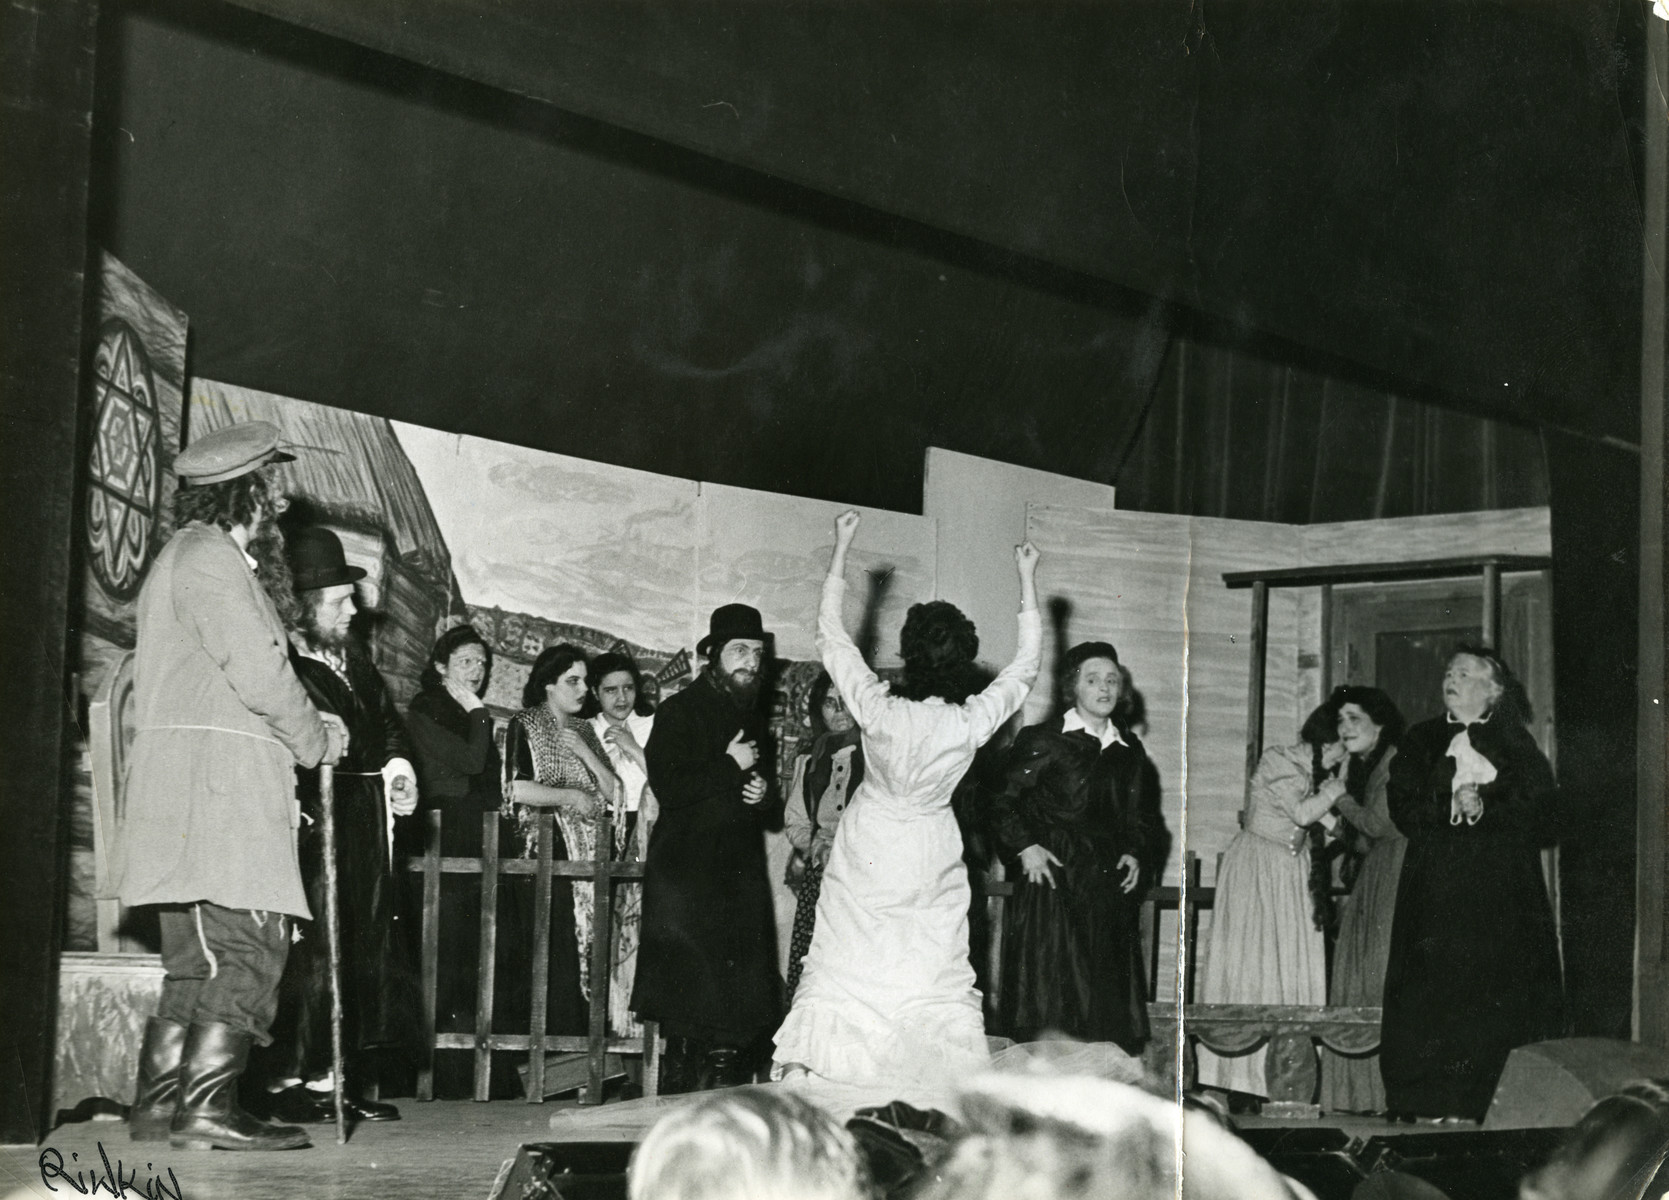 Abraham Kischinovsky performs in a Hassidic coat for the Yiddish theatre.